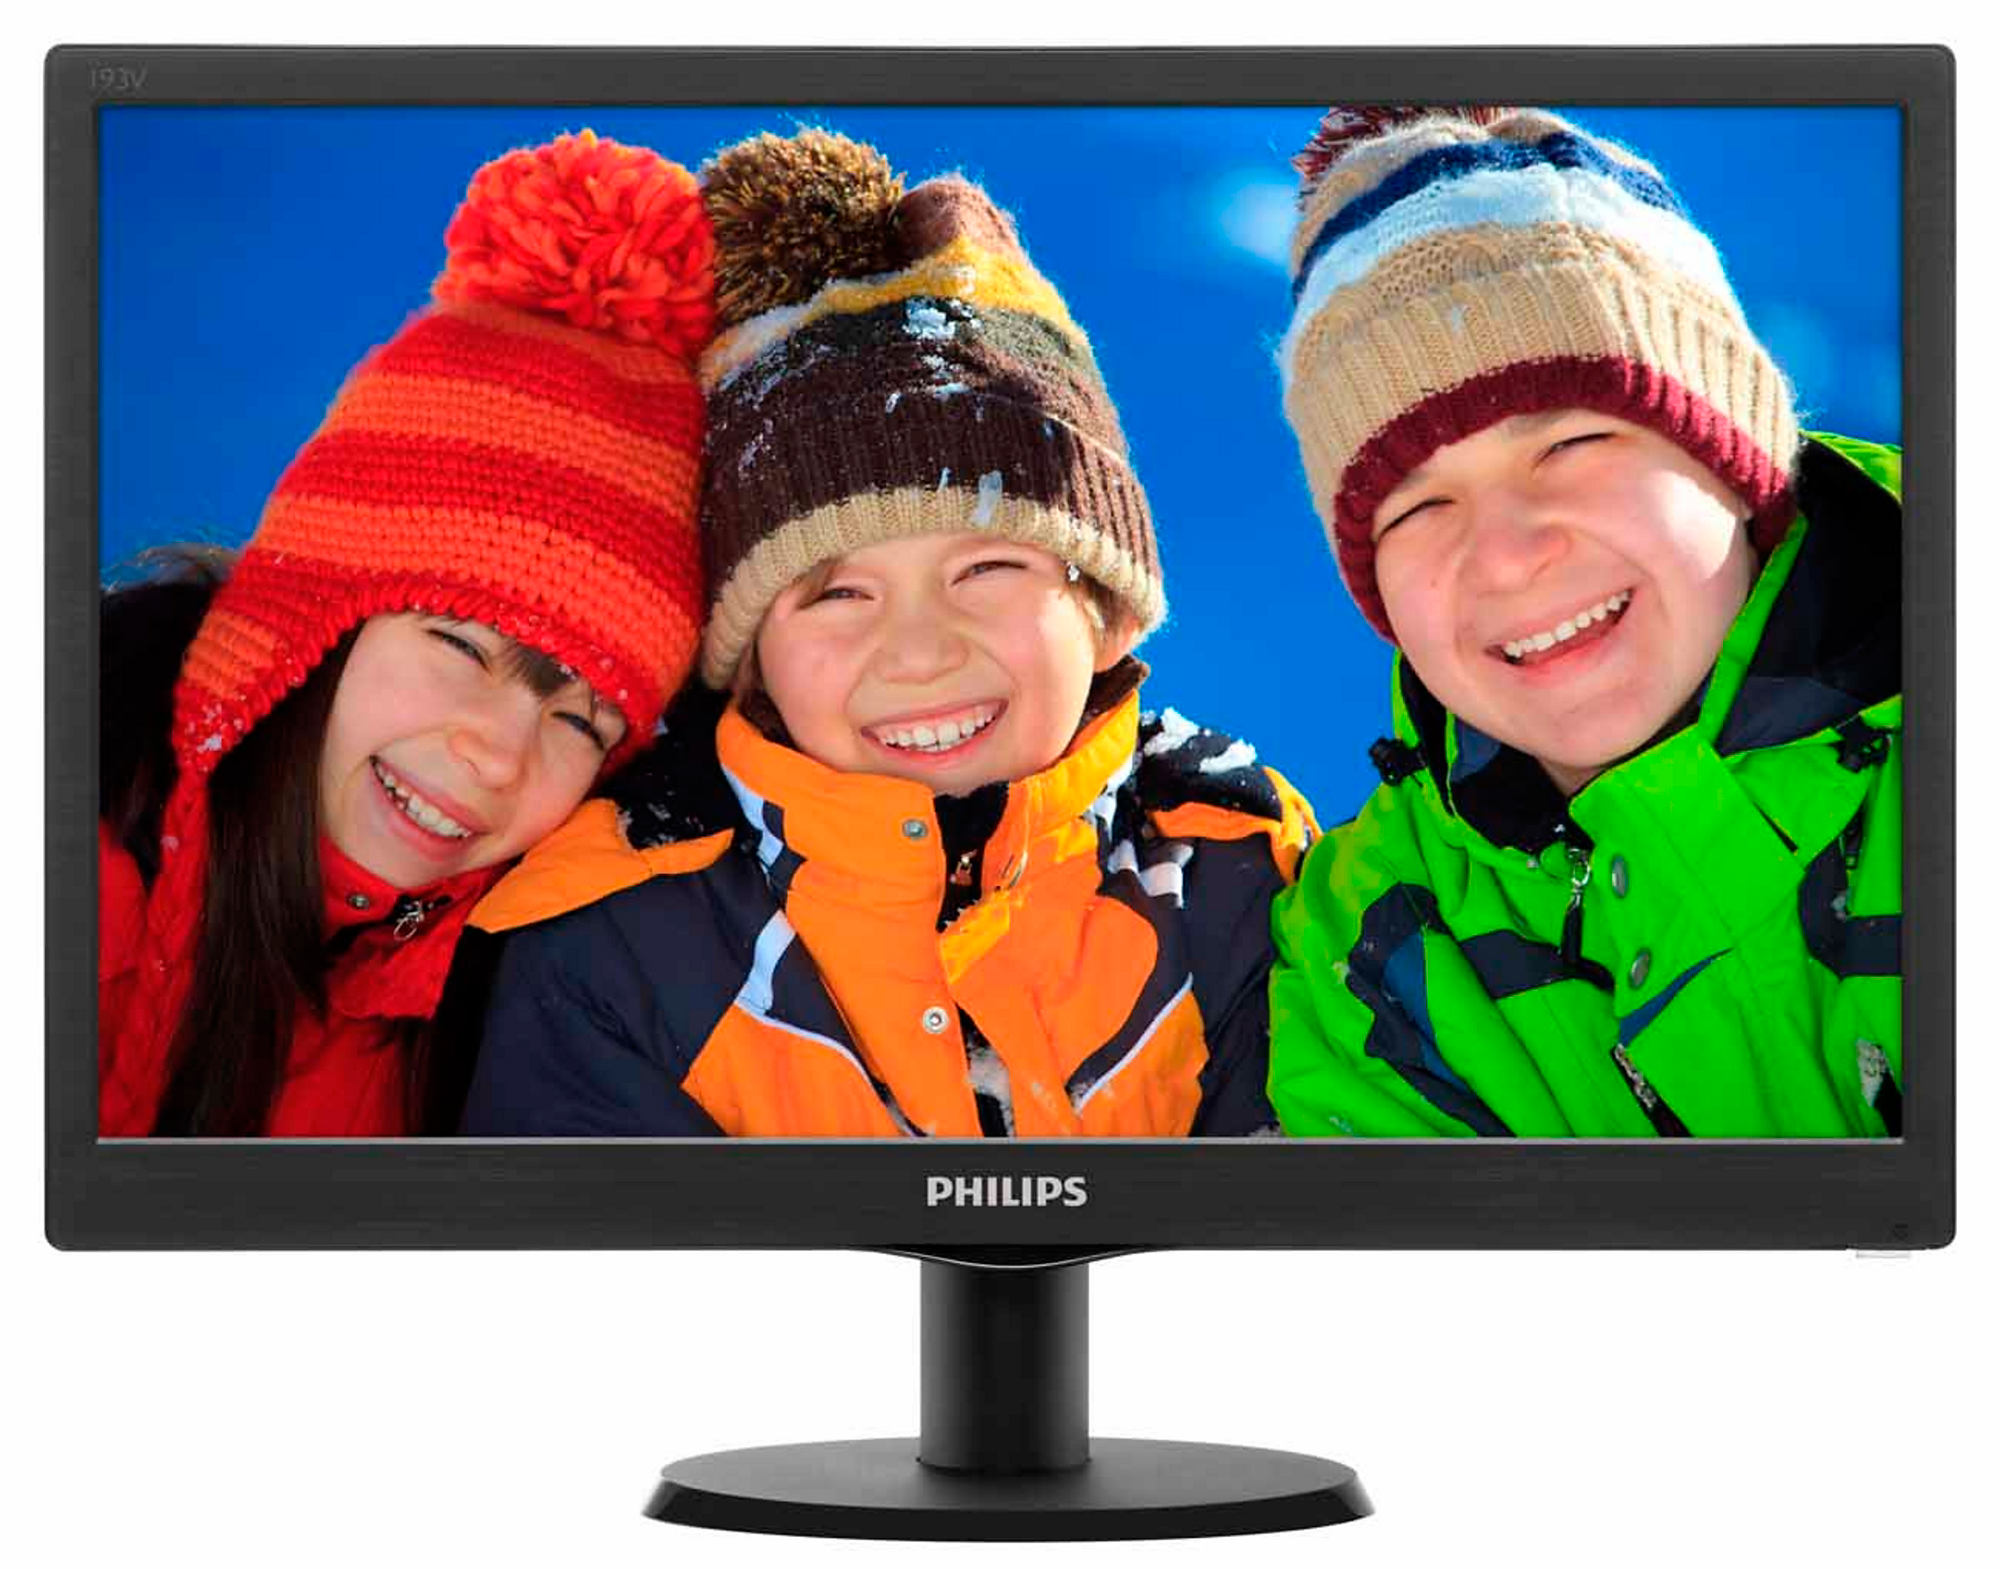 "Монитор TFT 19"" LED Philips 193V5LSB2 (193V5LSB2/10/62 (12*)), wide, 5ms, контр. 700:1, яр. 200 кд/м2, D-Sub, Black"